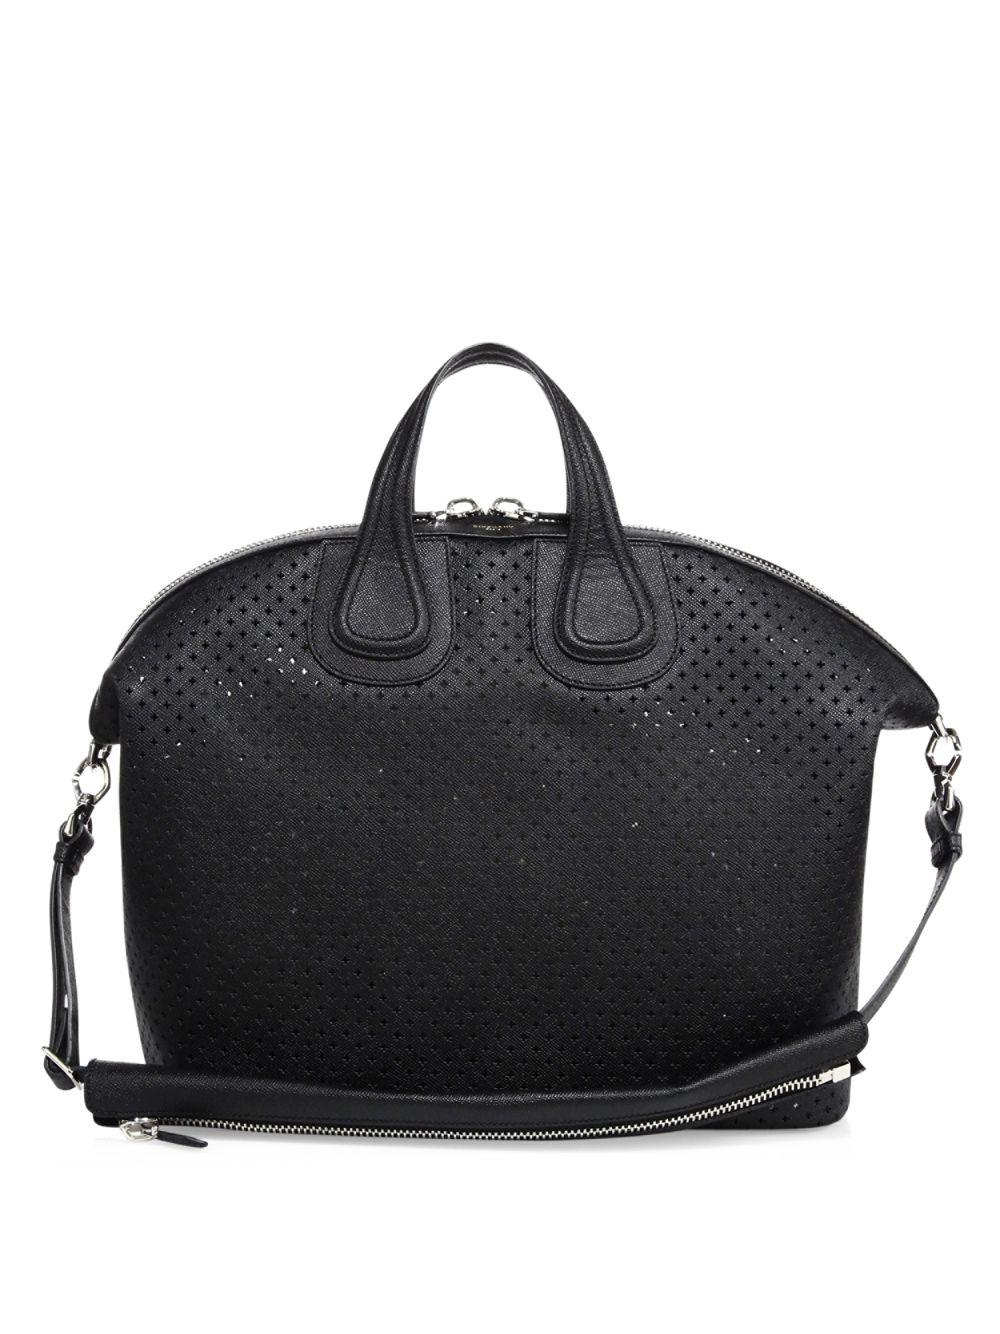 4e77db7c9a65 Givenchy Nightingale Perforated Leather Bag in Black for Men - Lyst